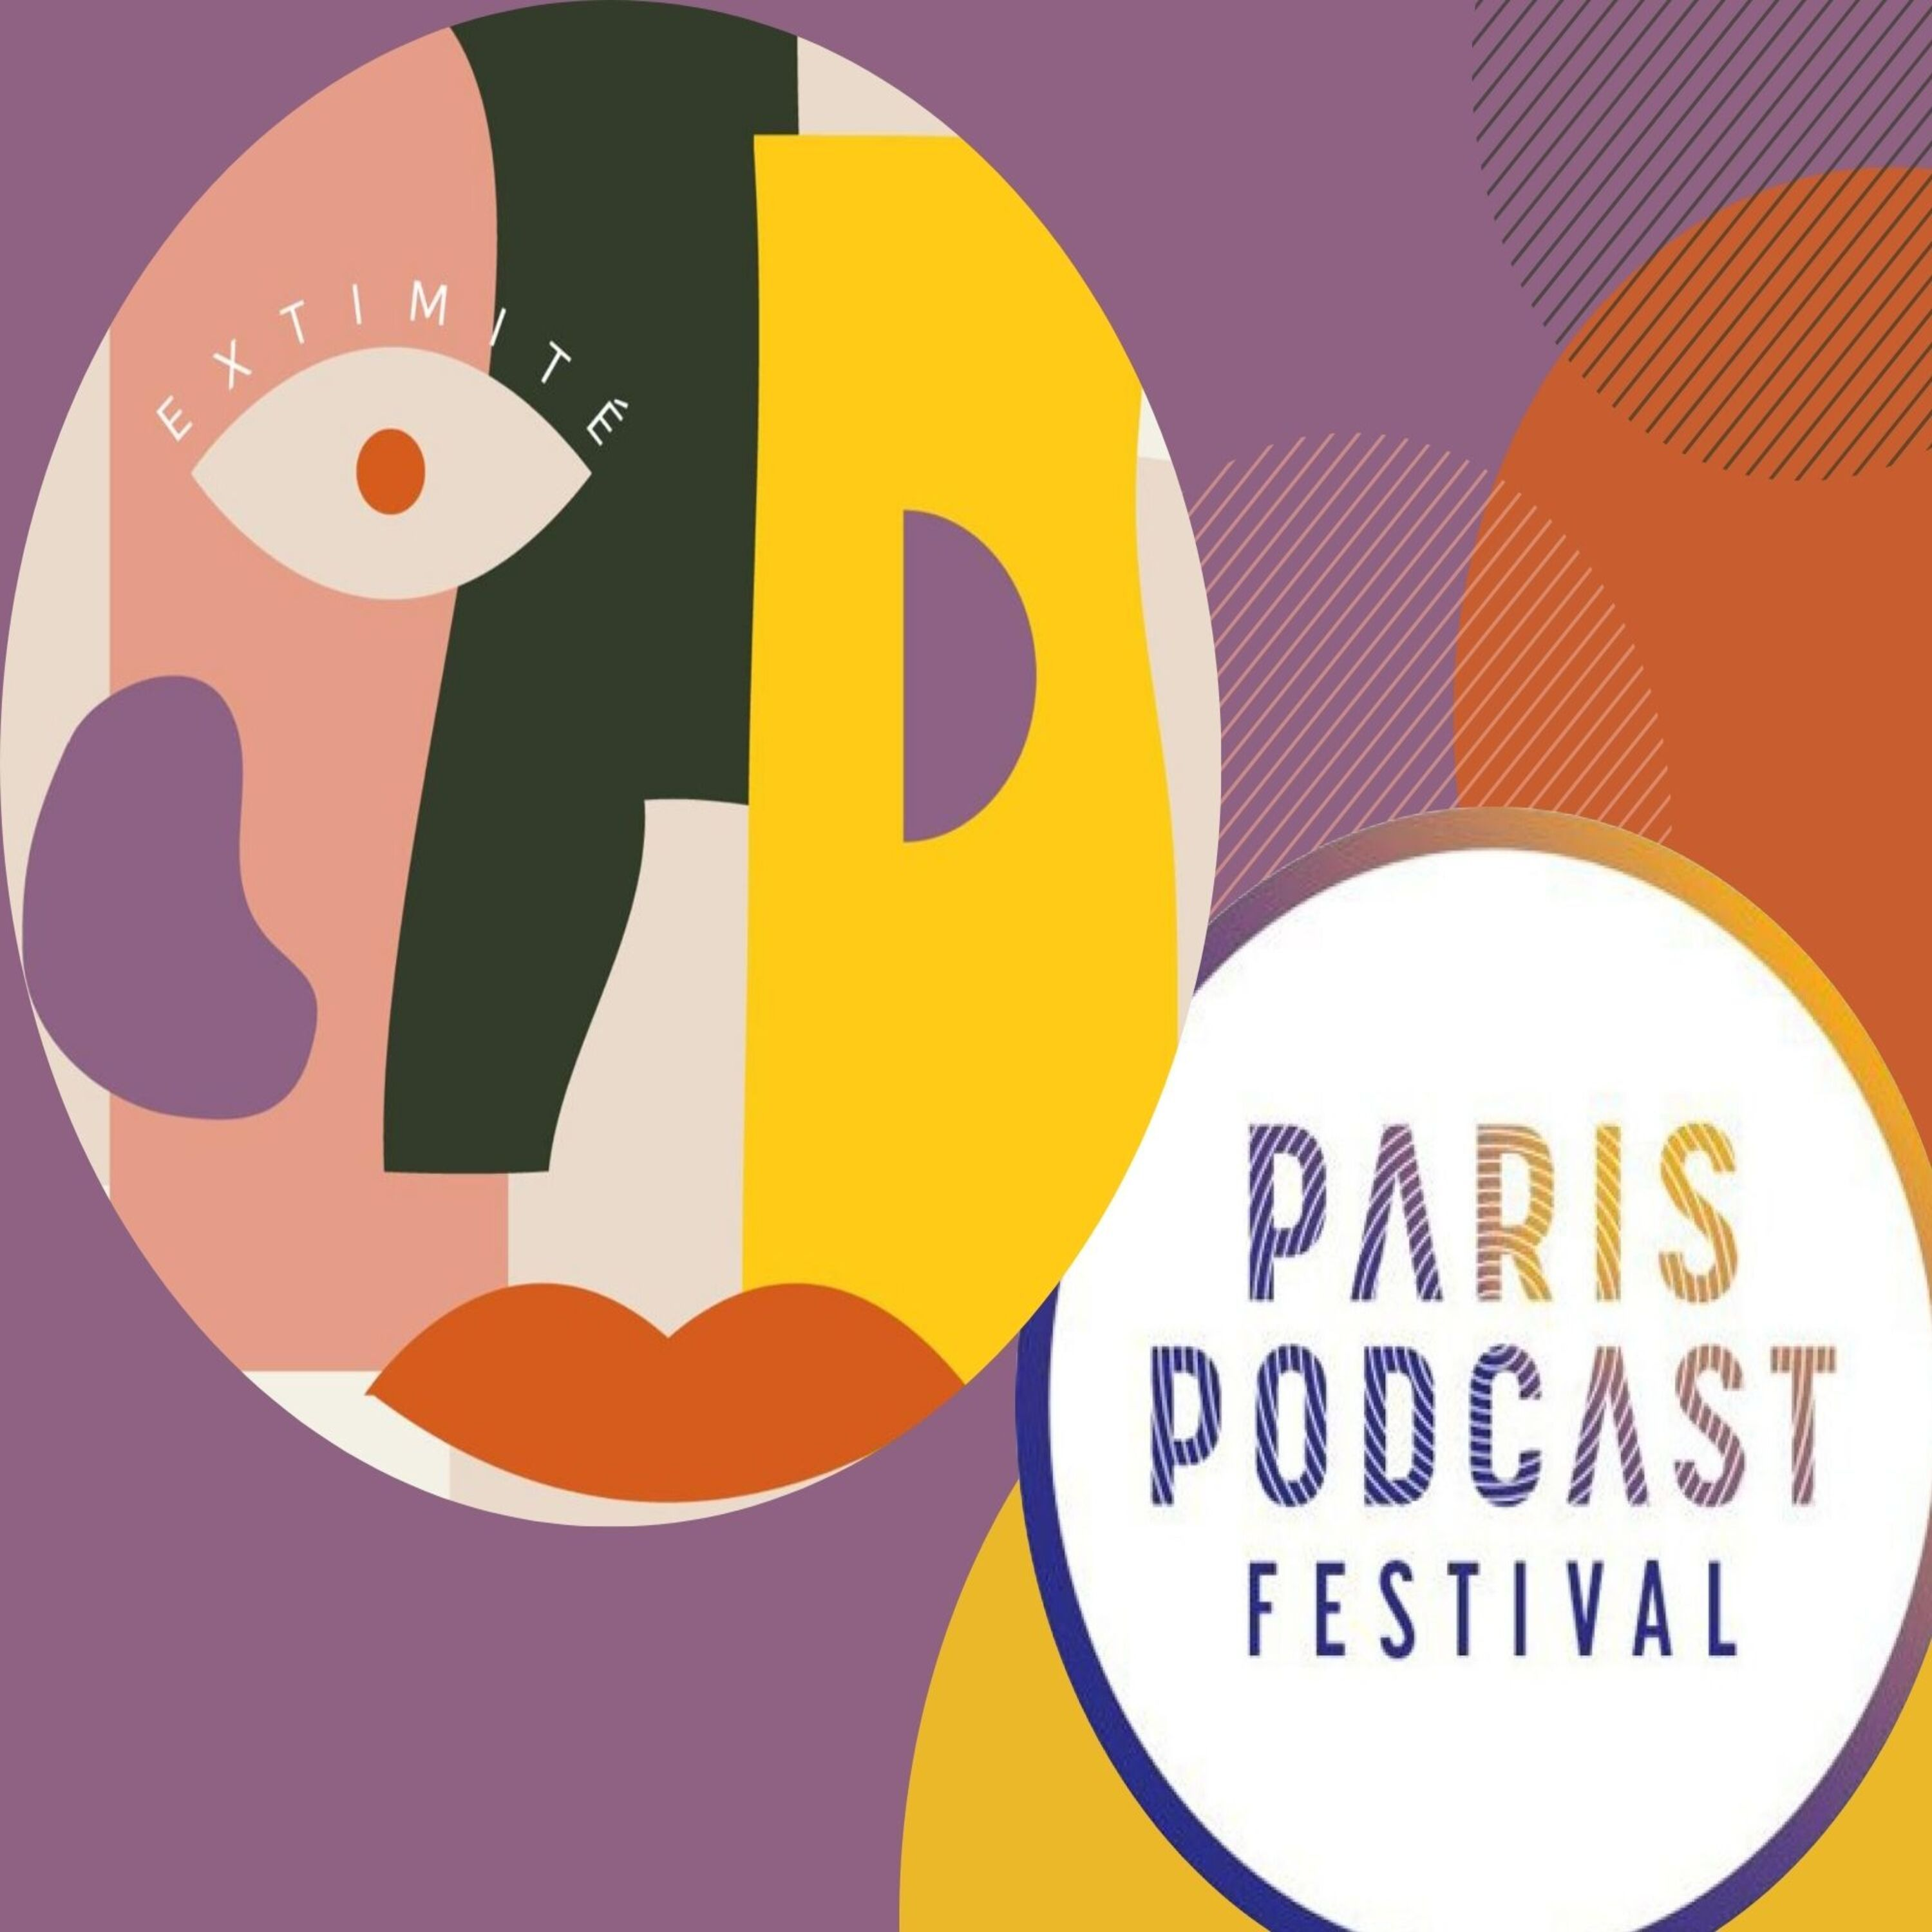 Paris Podcast Festival - Du greenwashing au wokewashing